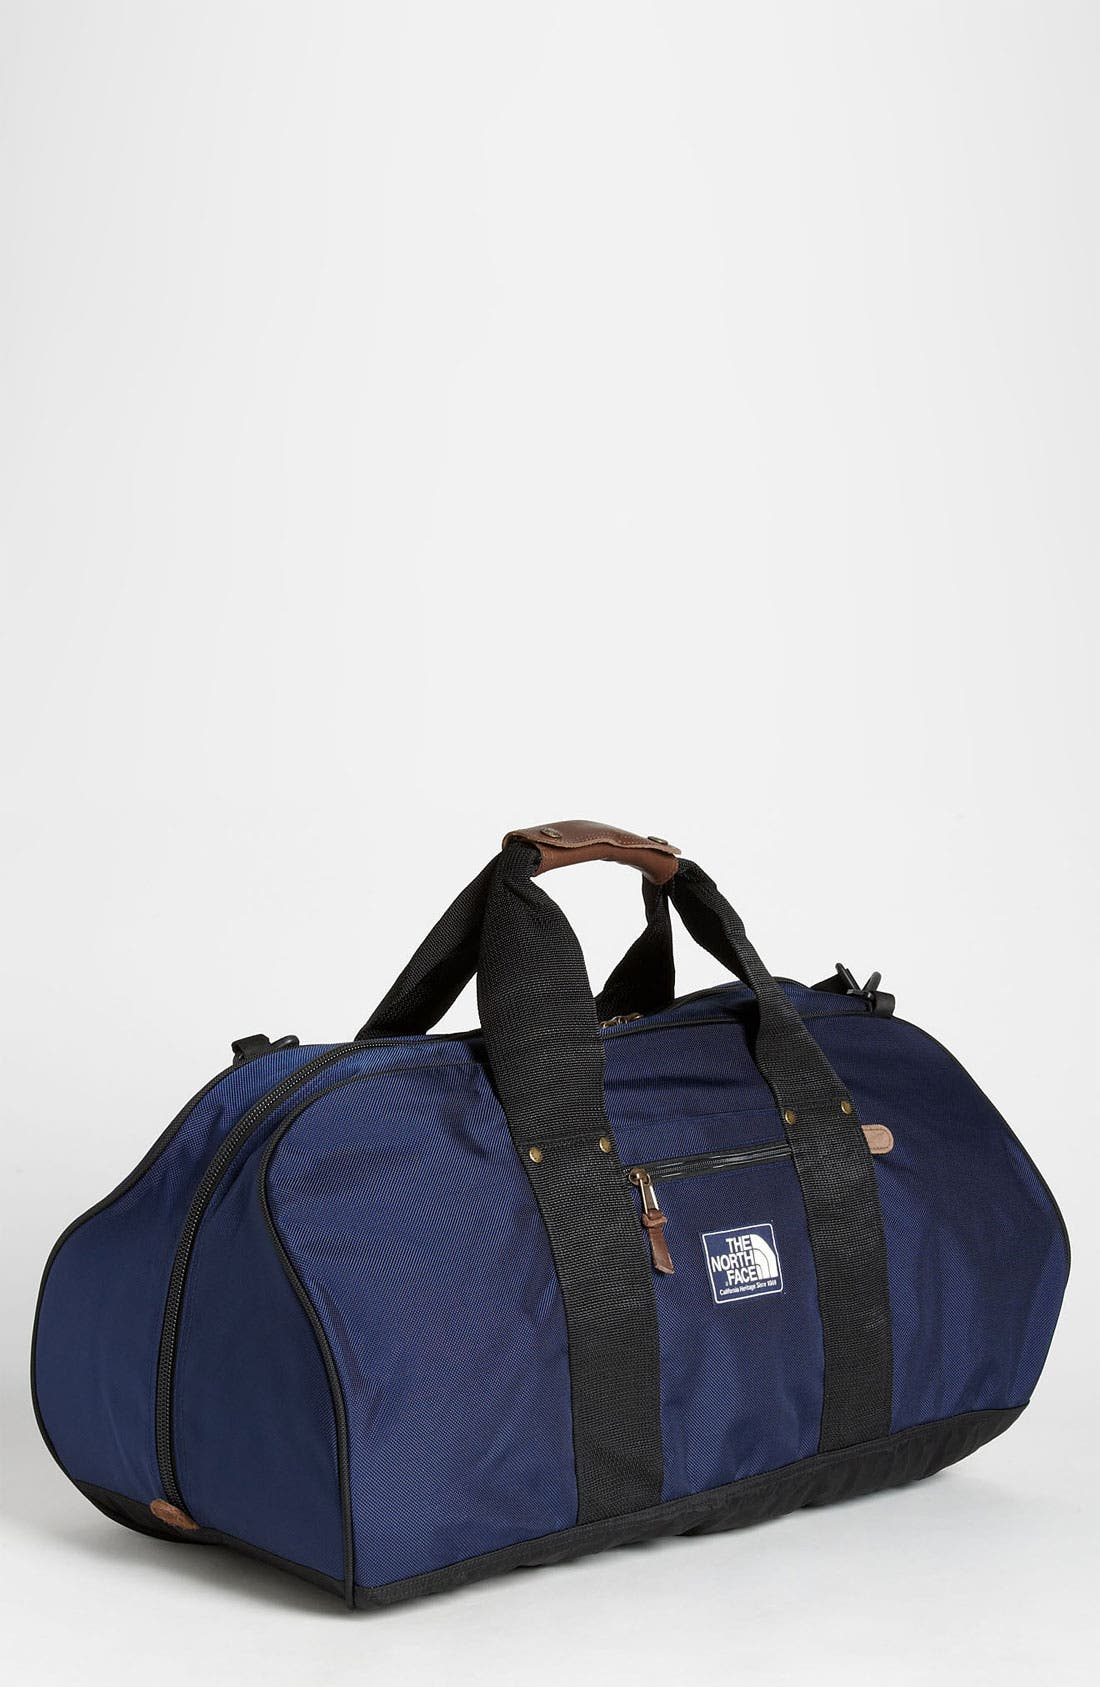 Main Image - The North Face Duffel Bag